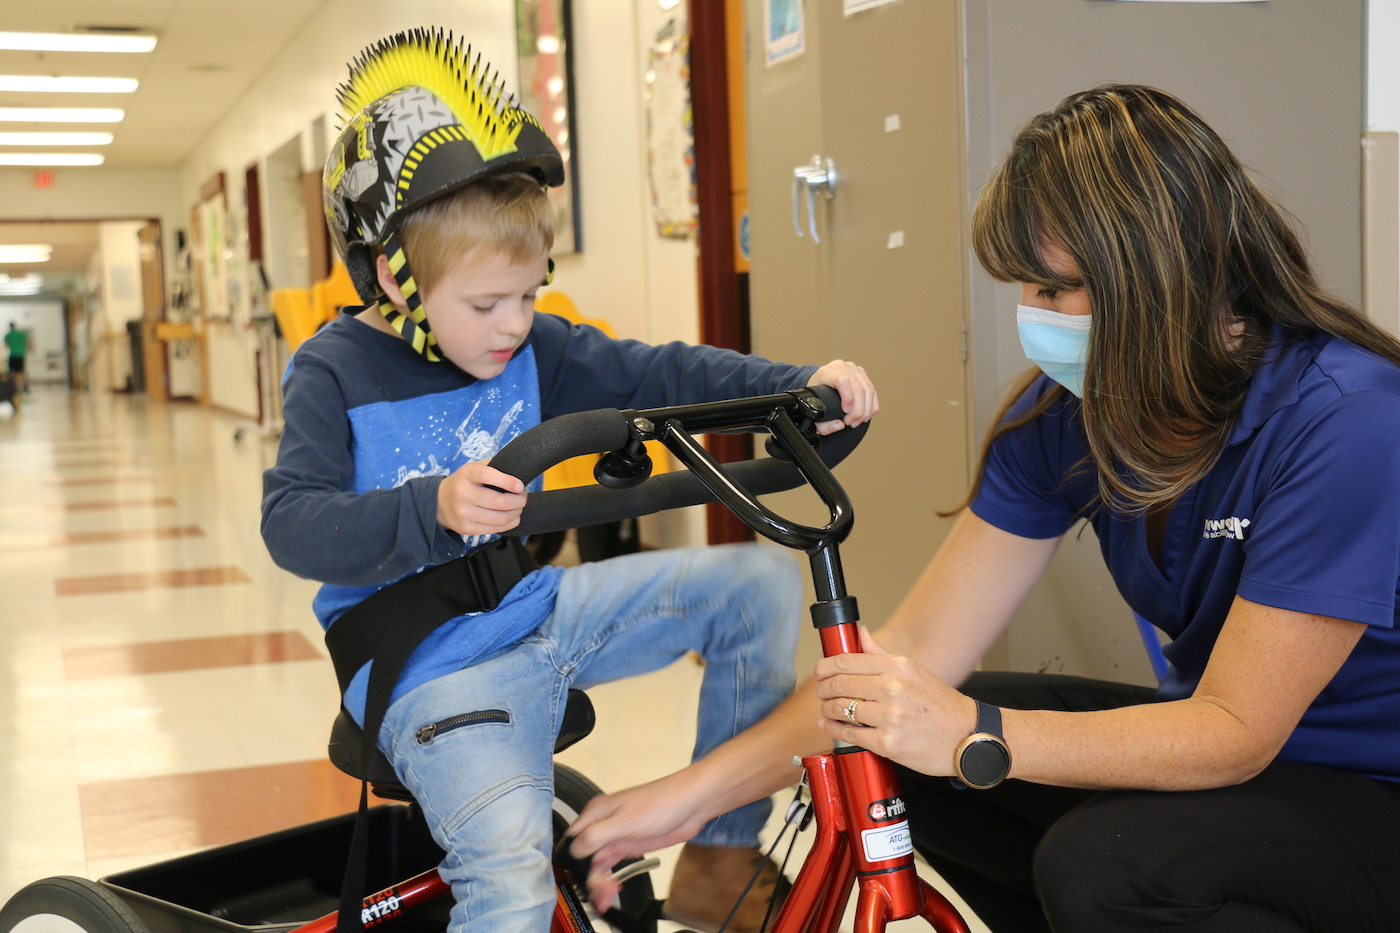 A Redwood employee assisting a child on a tricycle